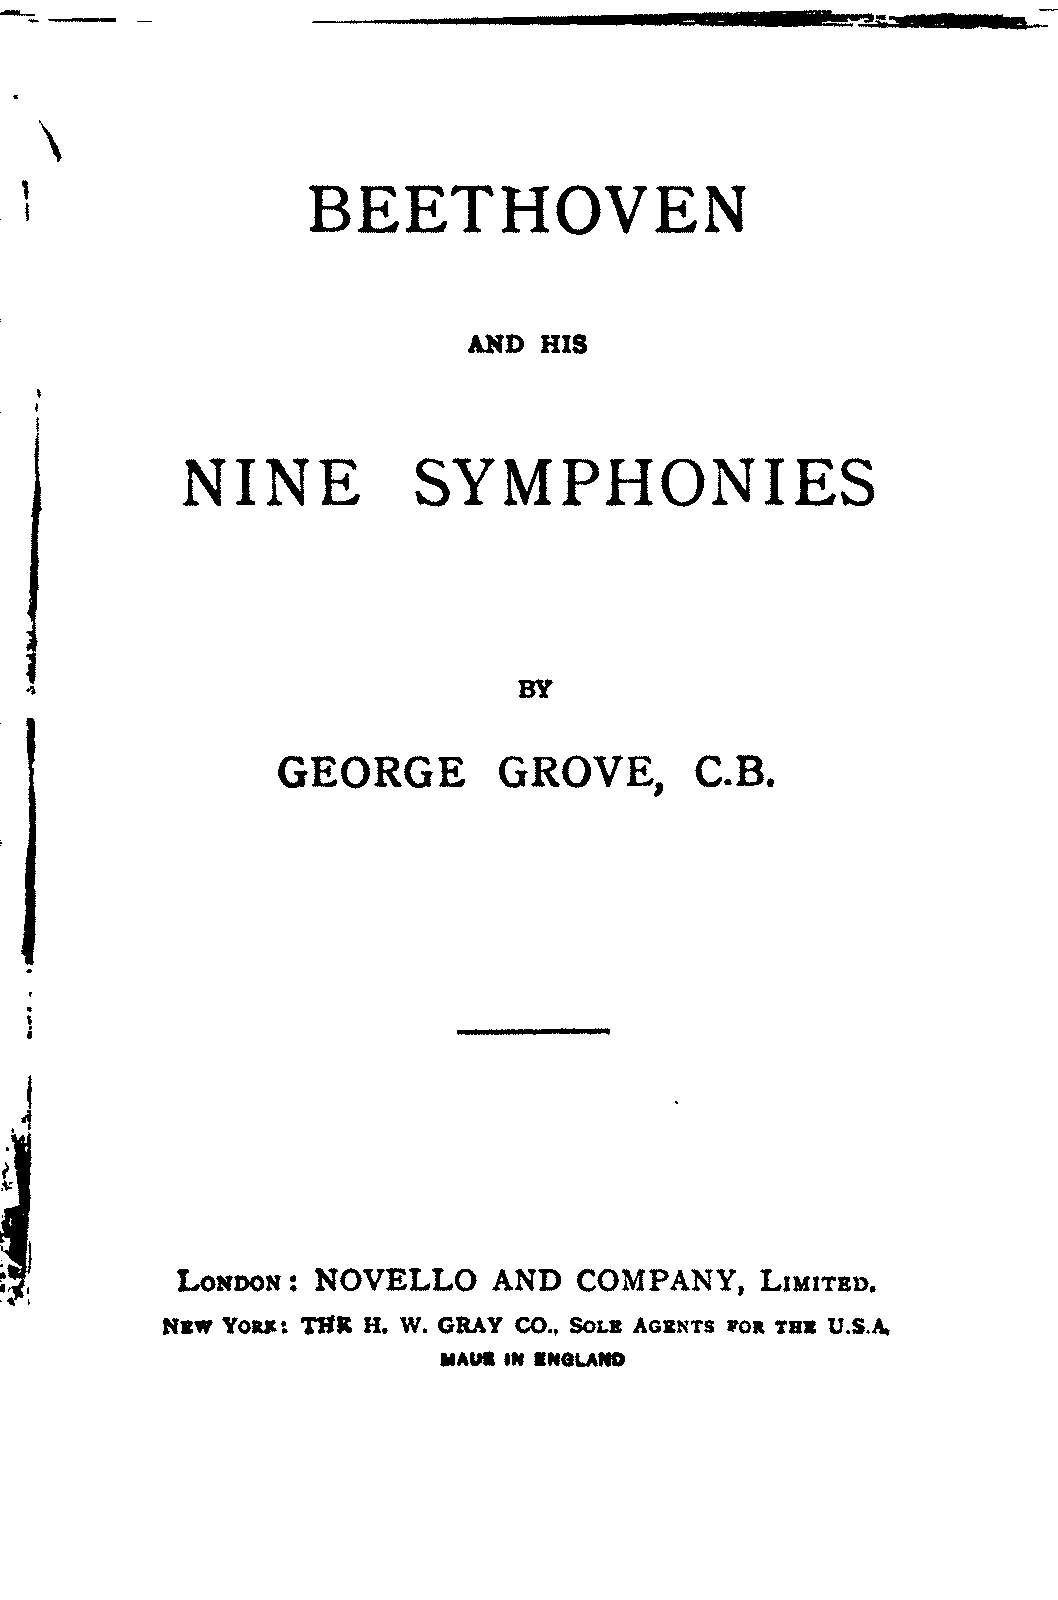 PMLP192824-Beethoven and his nine symphonies.pdf